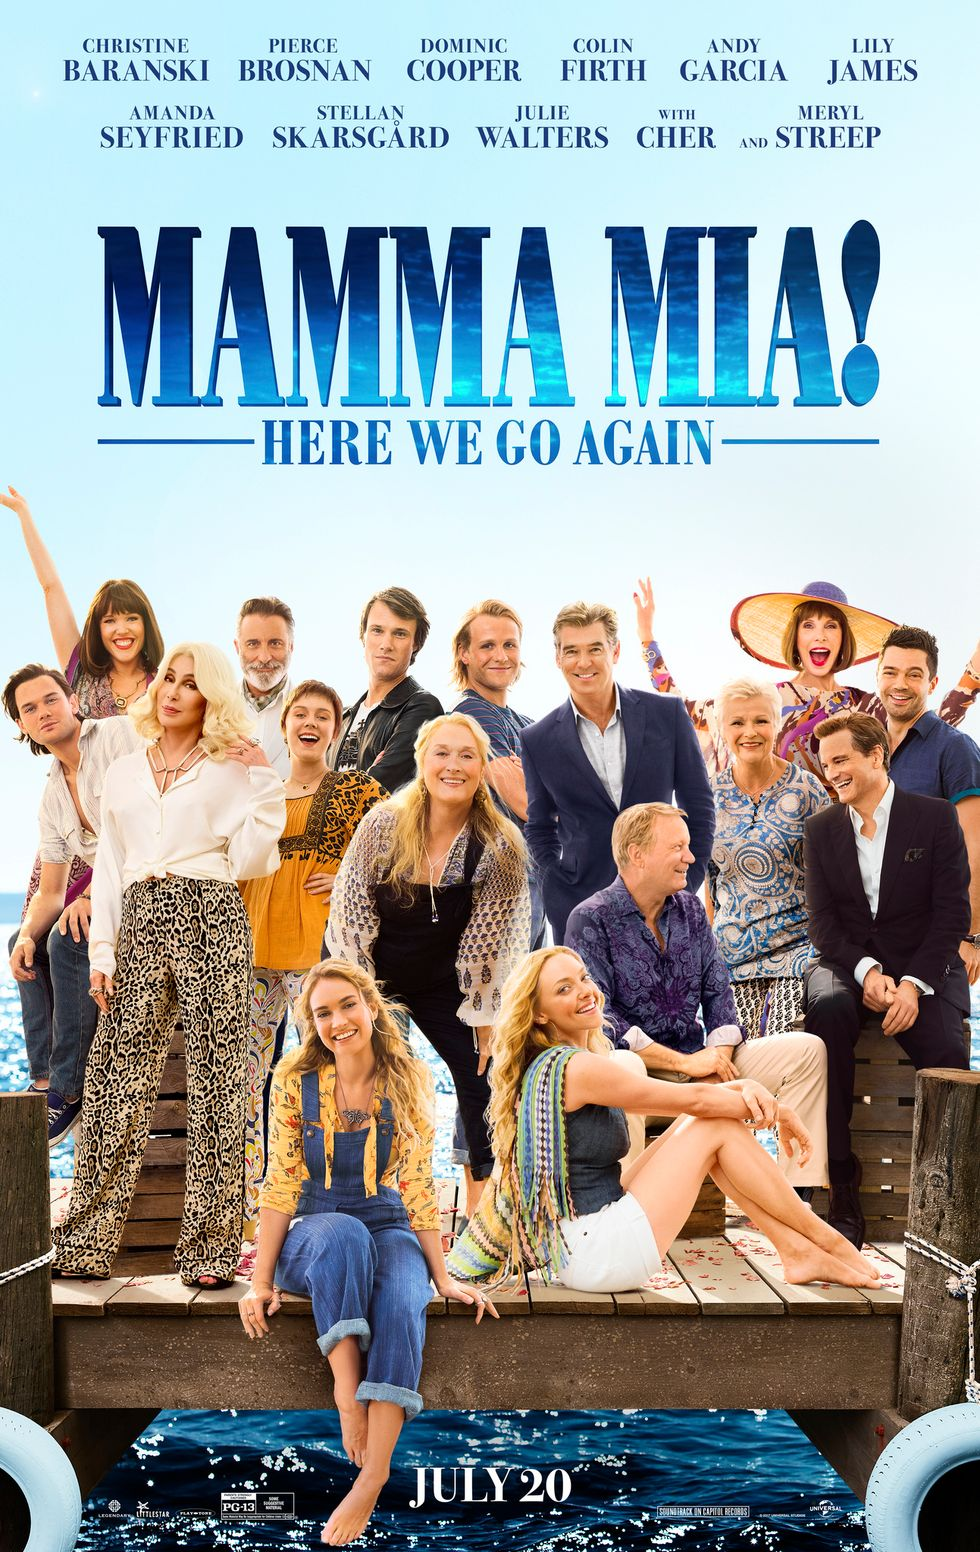 7 Reasons Why Mamma Mia Is The Ultimate Go-To Movie